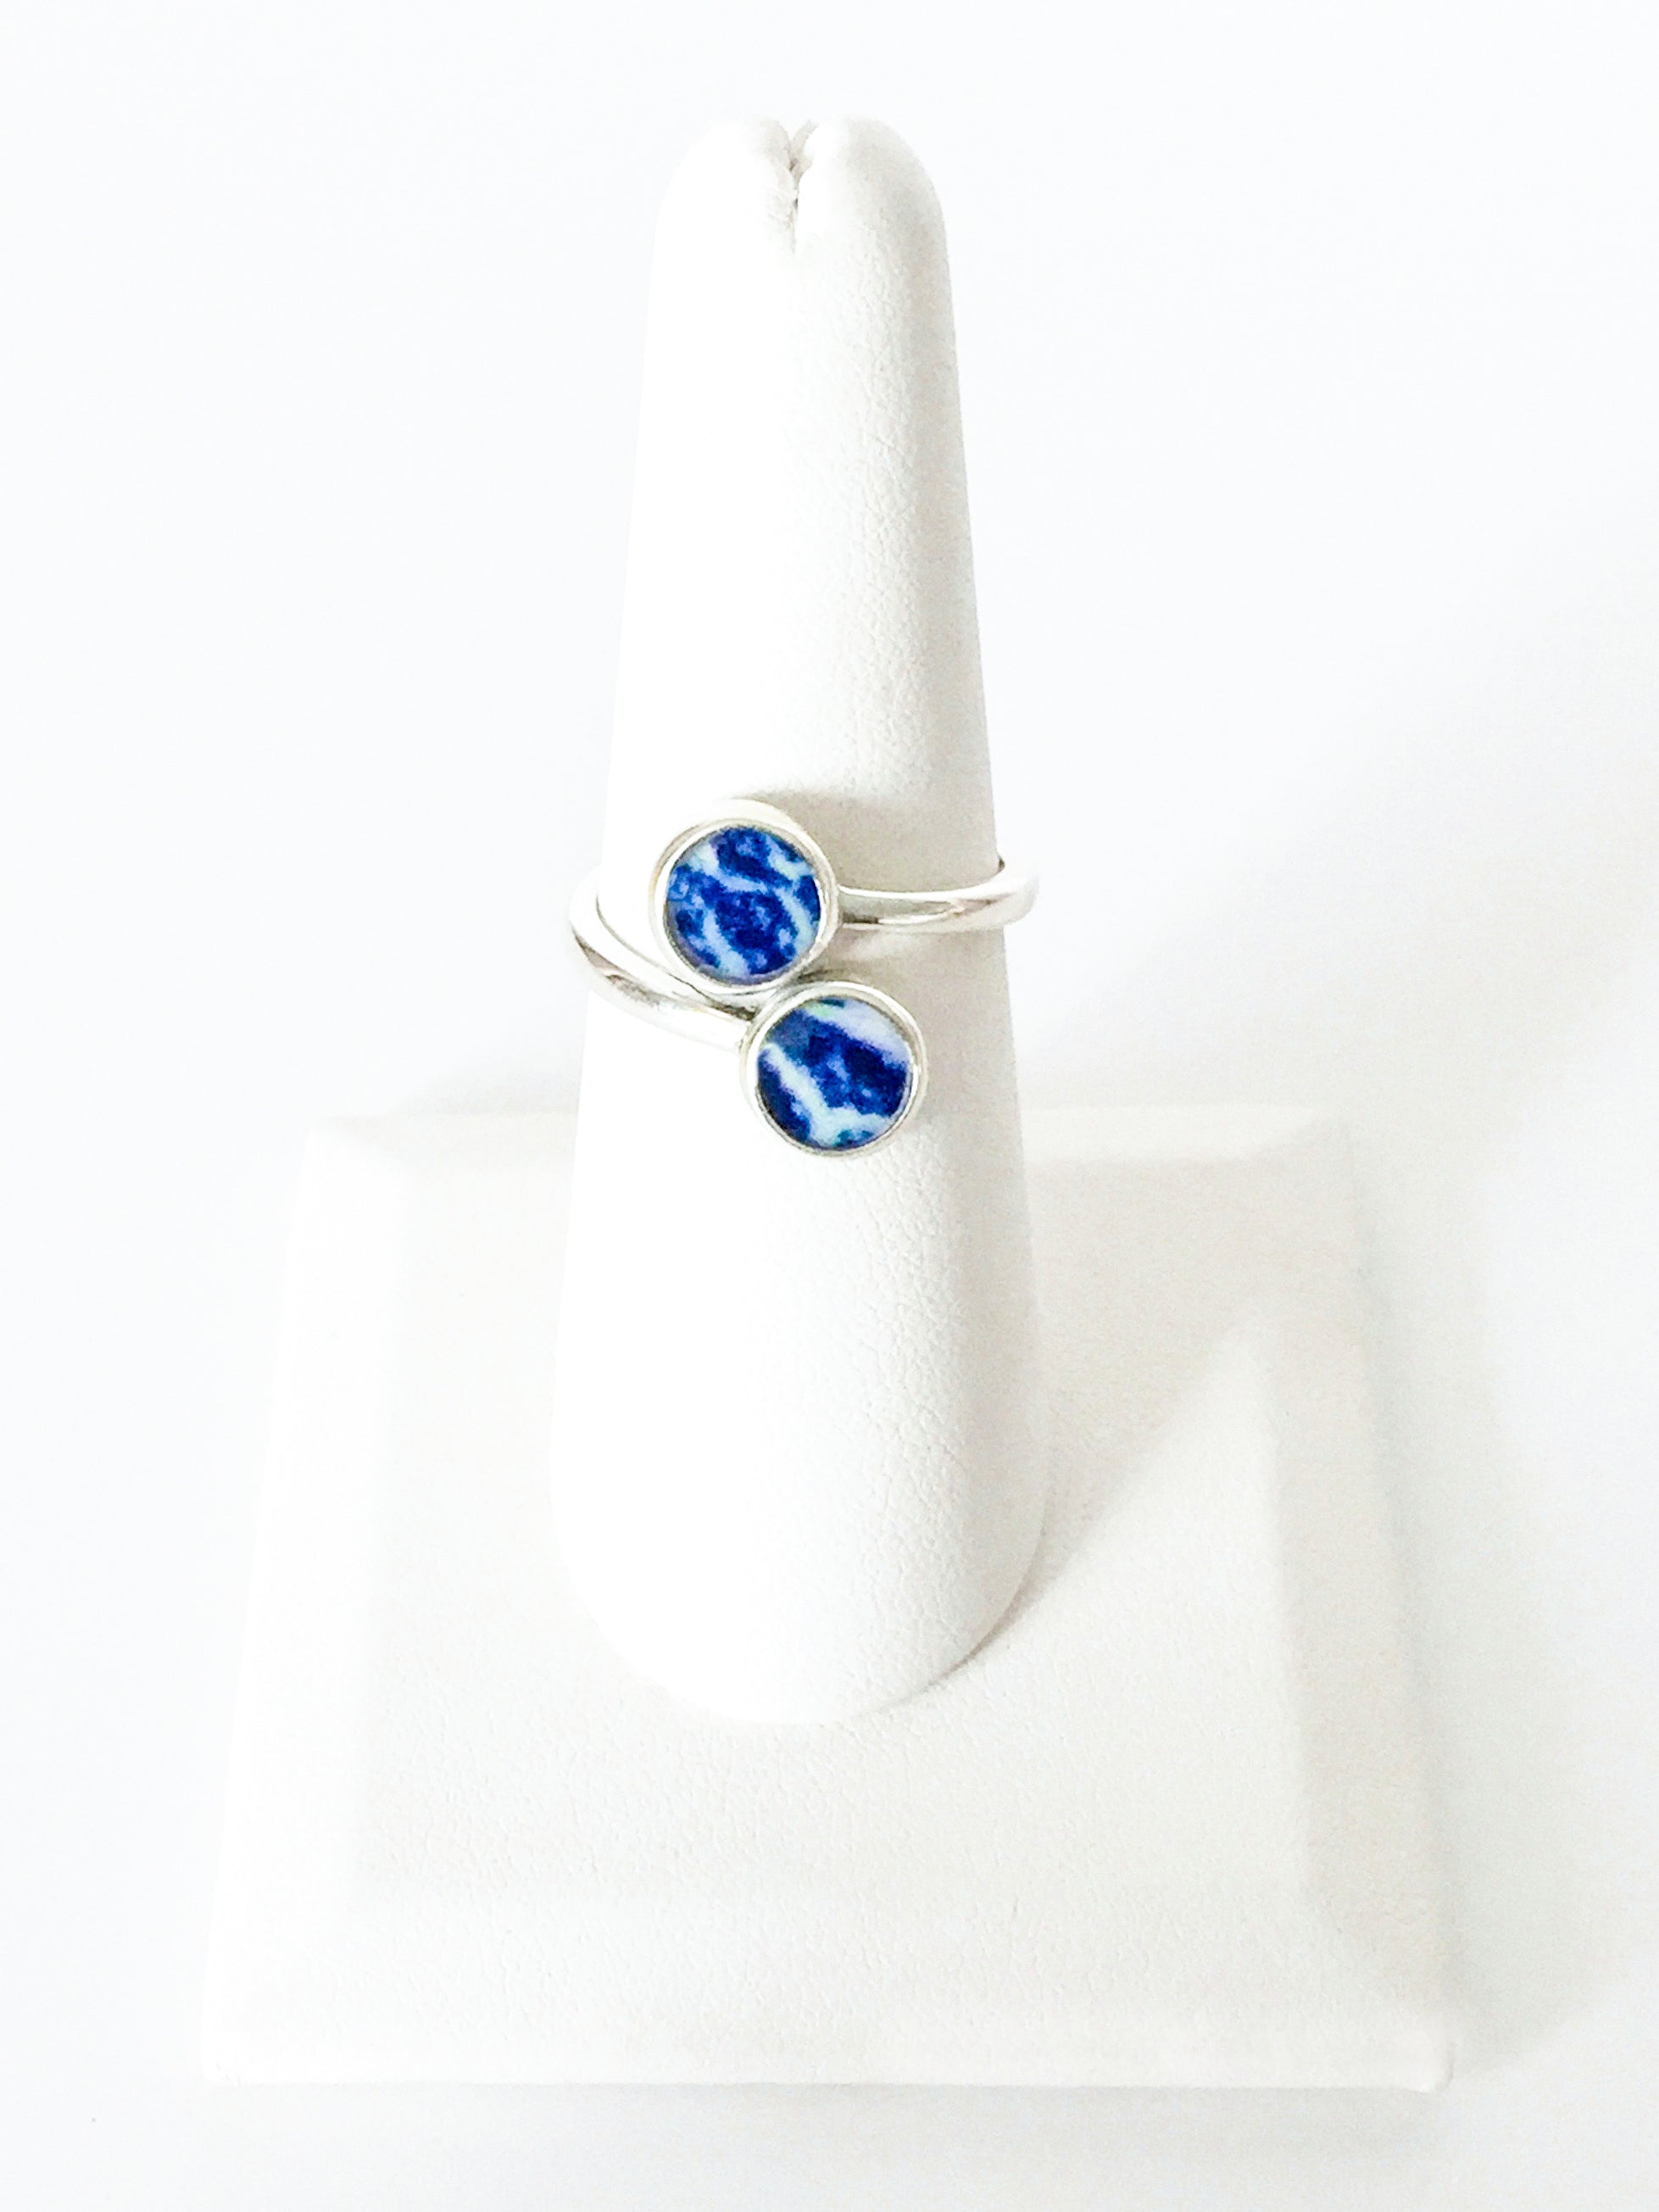 silver ring with sterling silver band and round white and blue resin stones setting ring